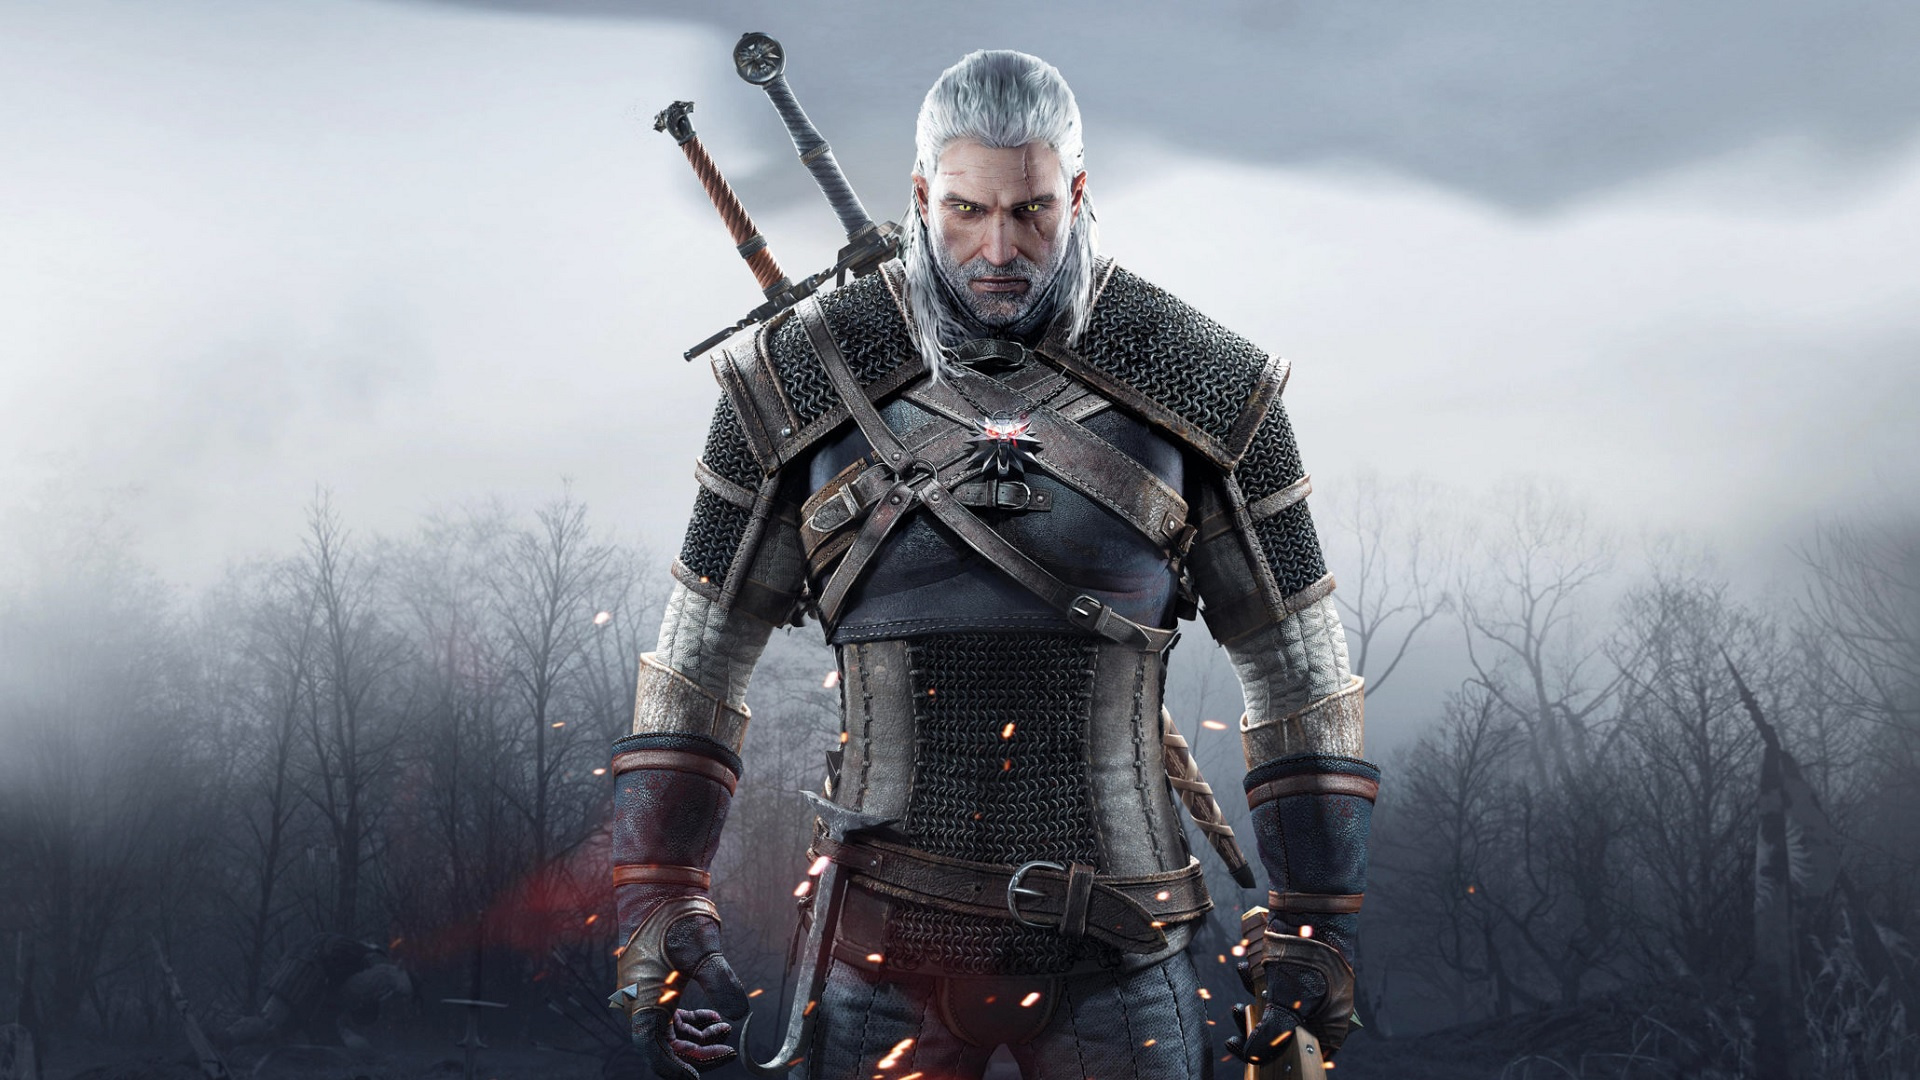 Guide: The Witcher 3 On Nintendo Switch - 10 Gameplay Settings To Check Out Before Starting